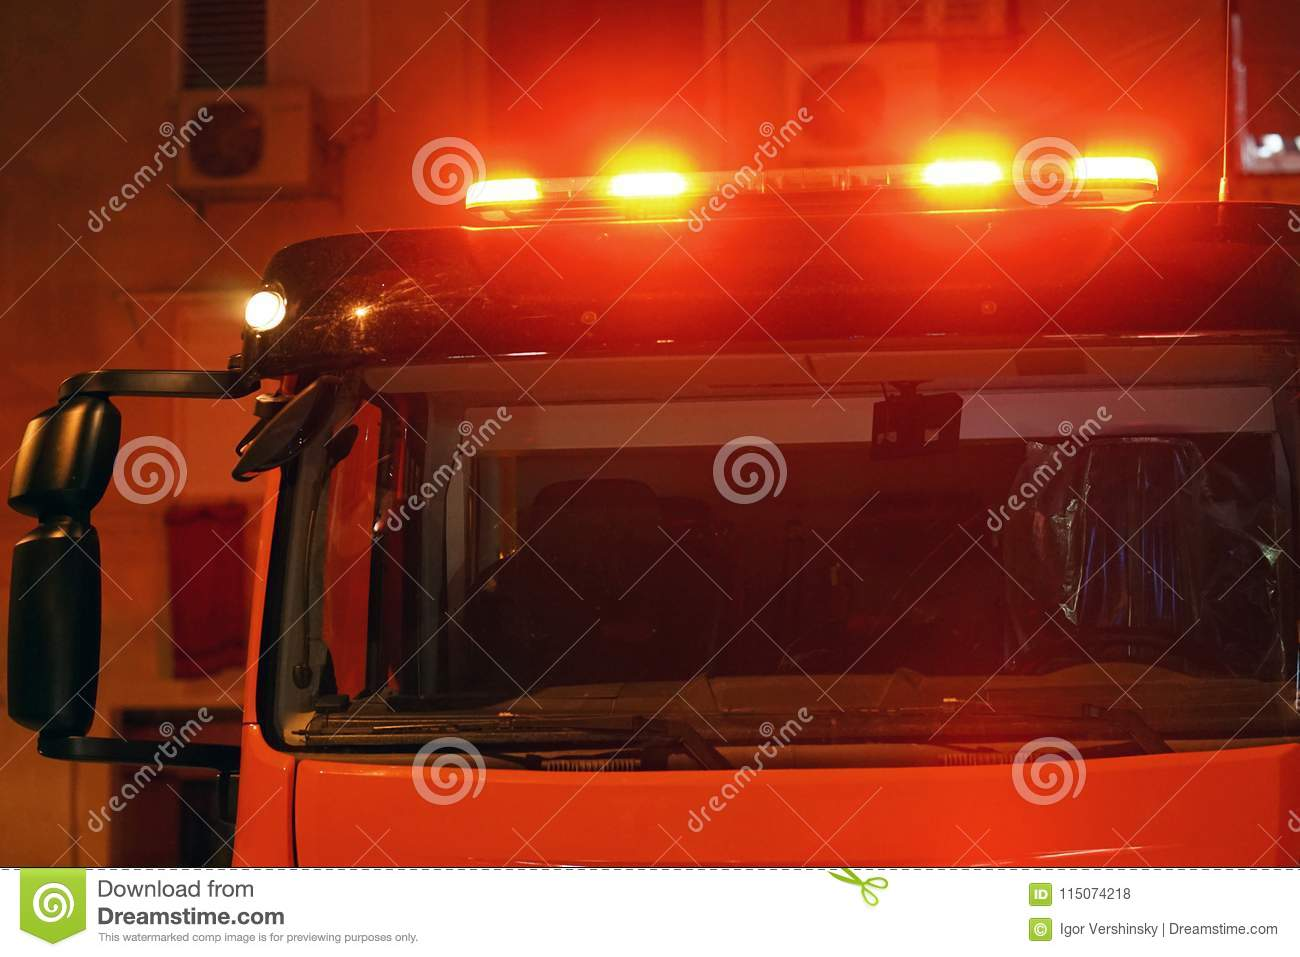 Red lights on top of Fire engine car